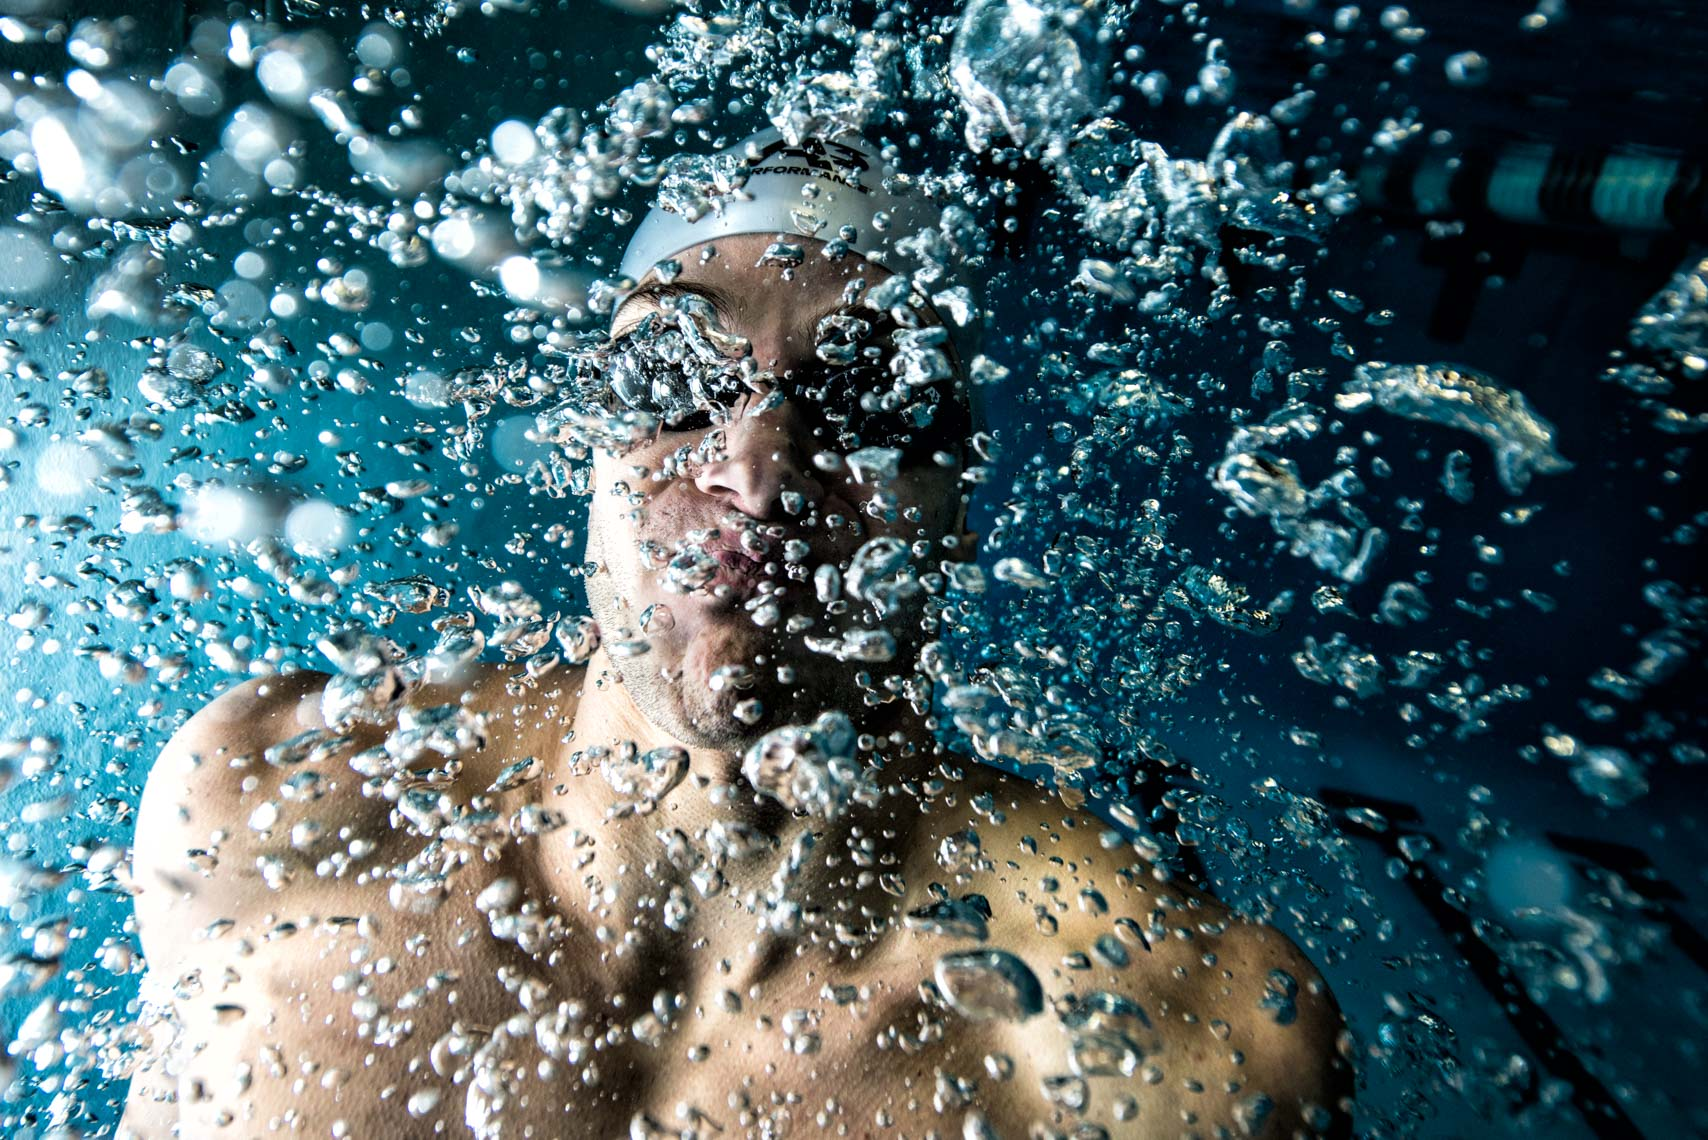 USA Swimming National Team Member Michael Weiss